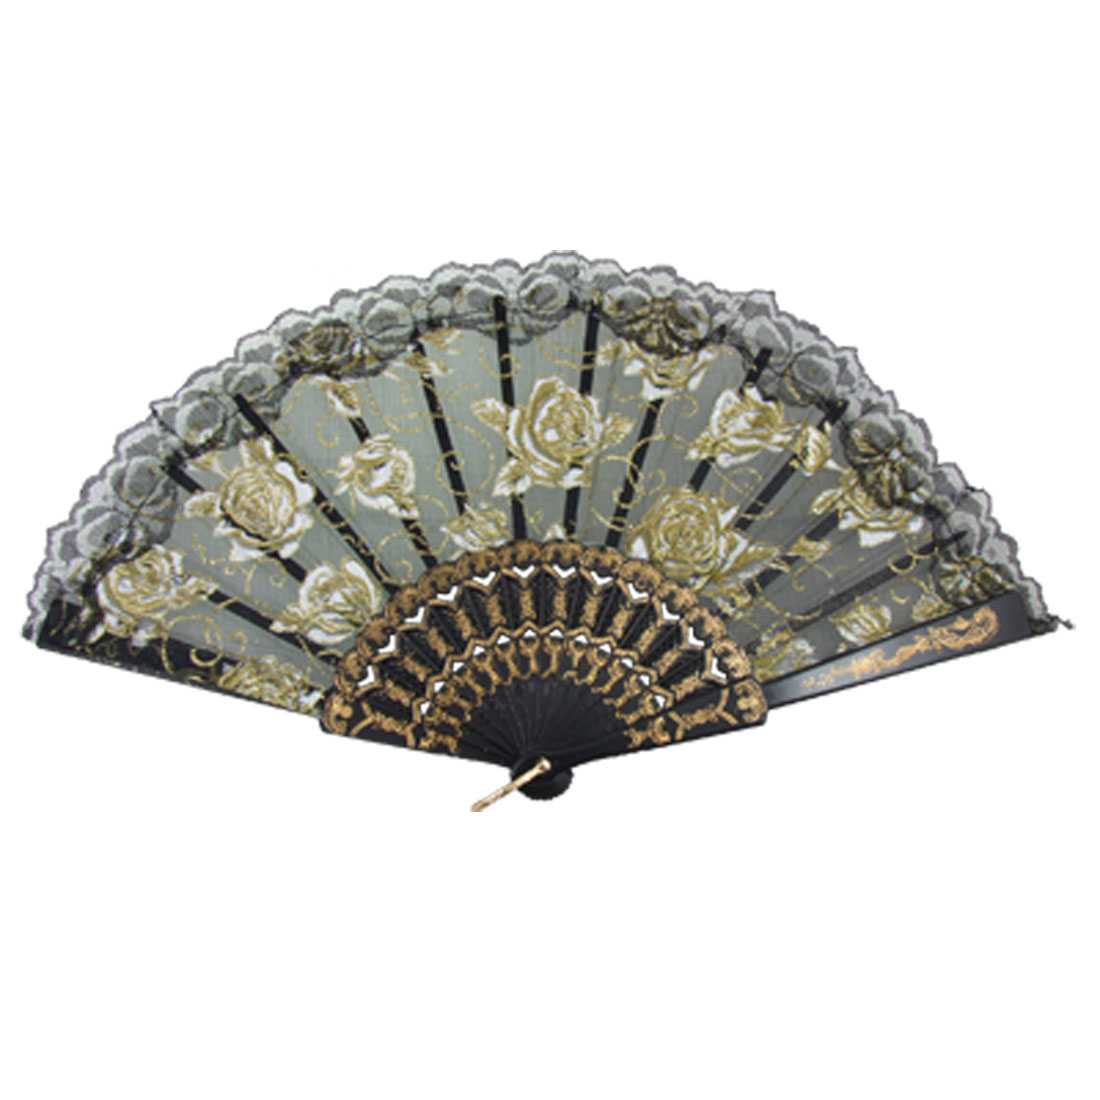 Organza Plastic Ribs Dance Foldable Hand Fan Black